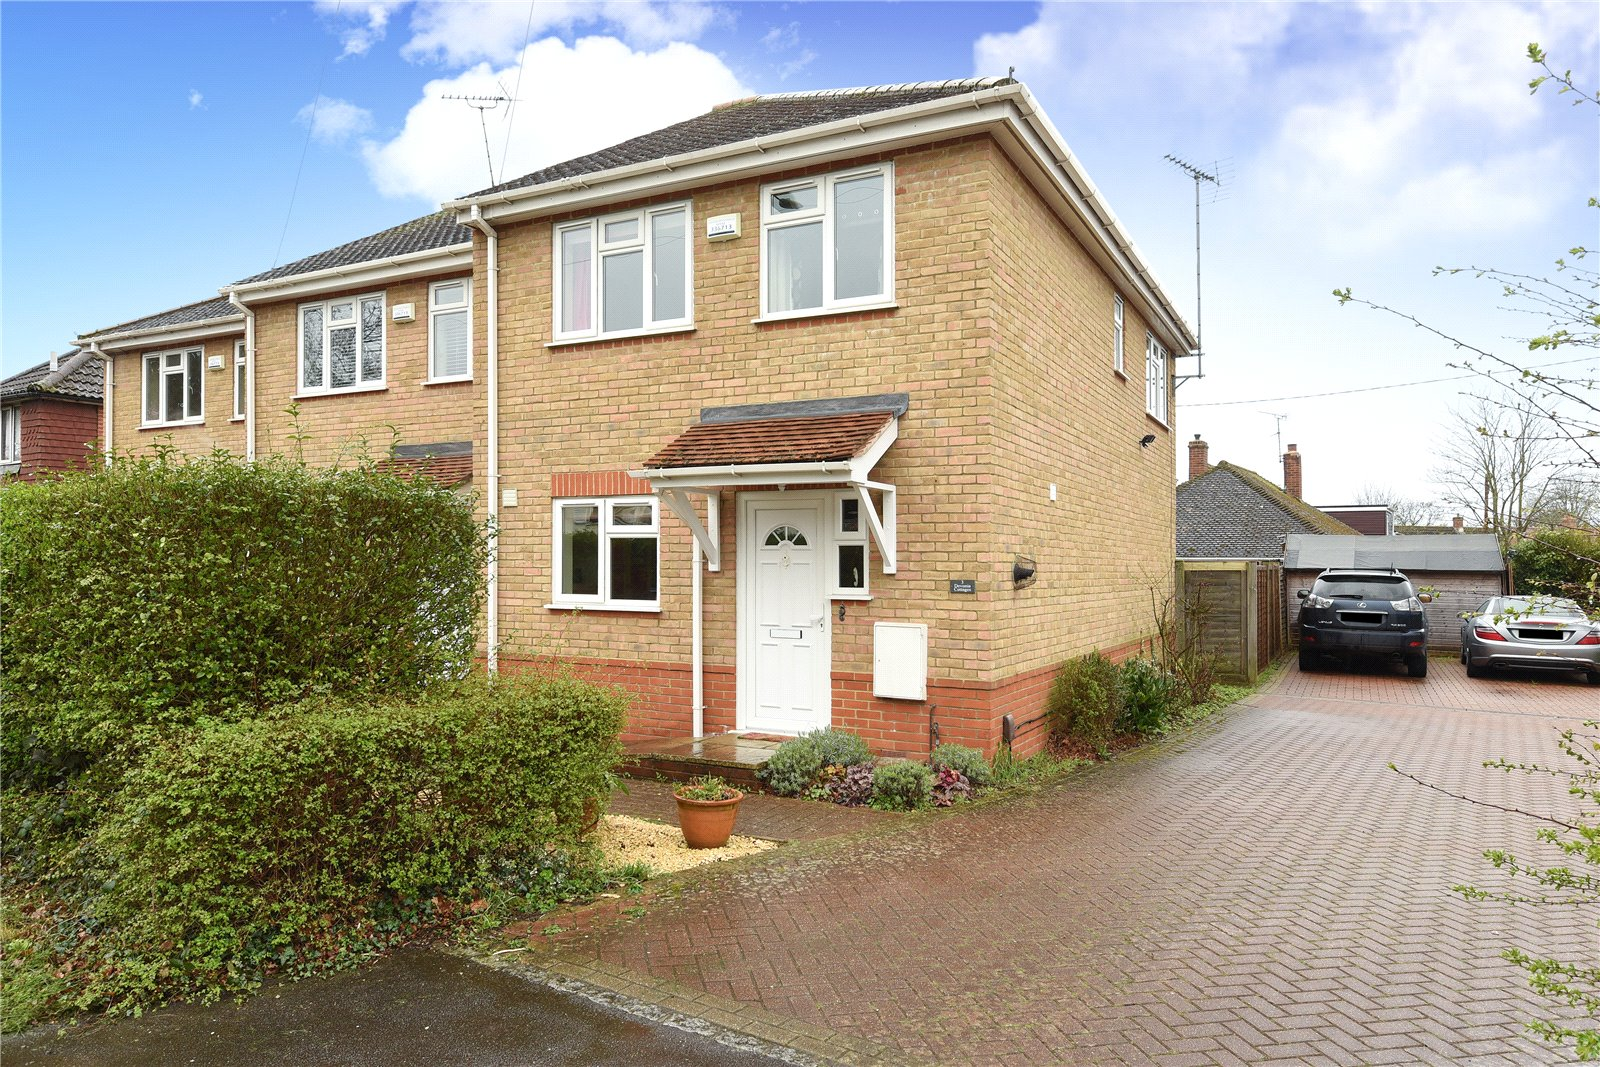 3 Bedrooms House for sale in Devonia Cottages, St. Marks Road, Binfield, Berkshire, RG42